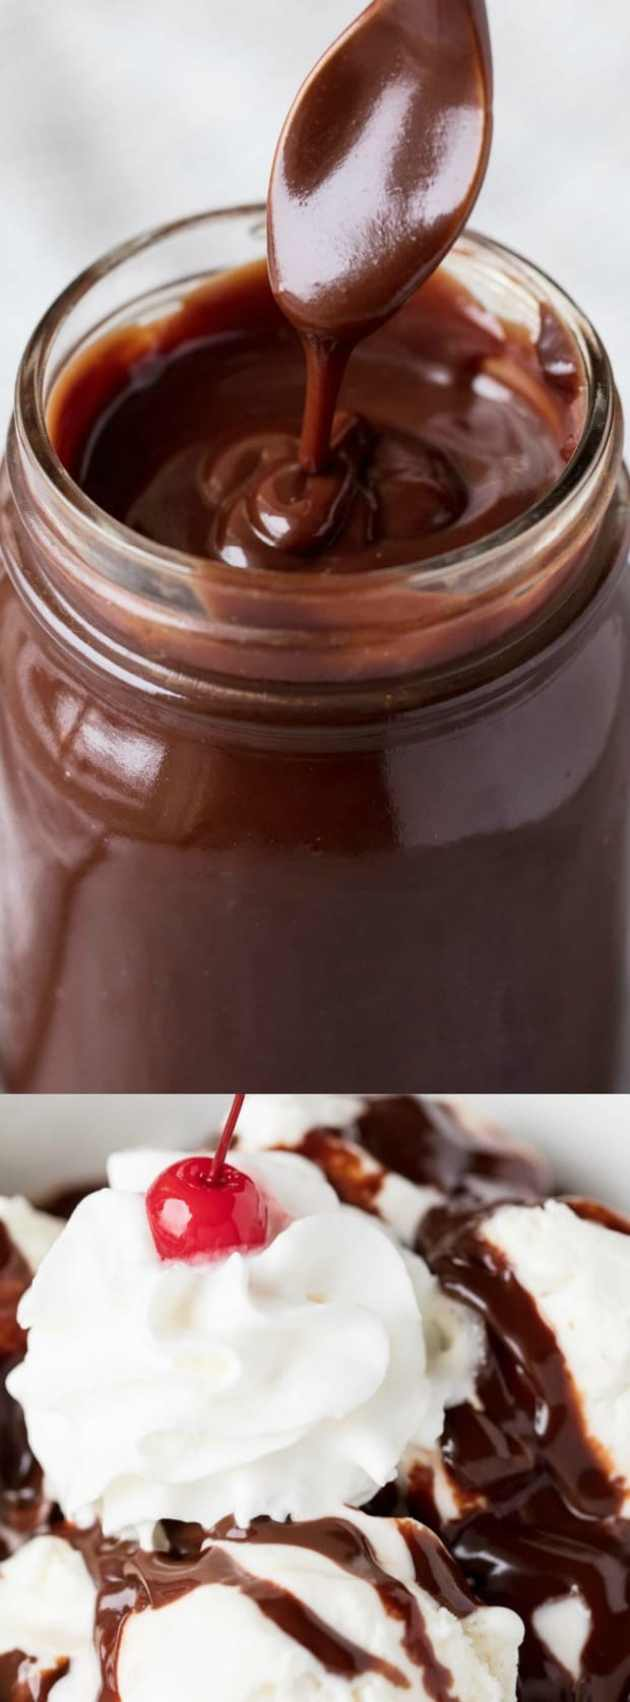 Best Hot Fudge Sauce Longpin